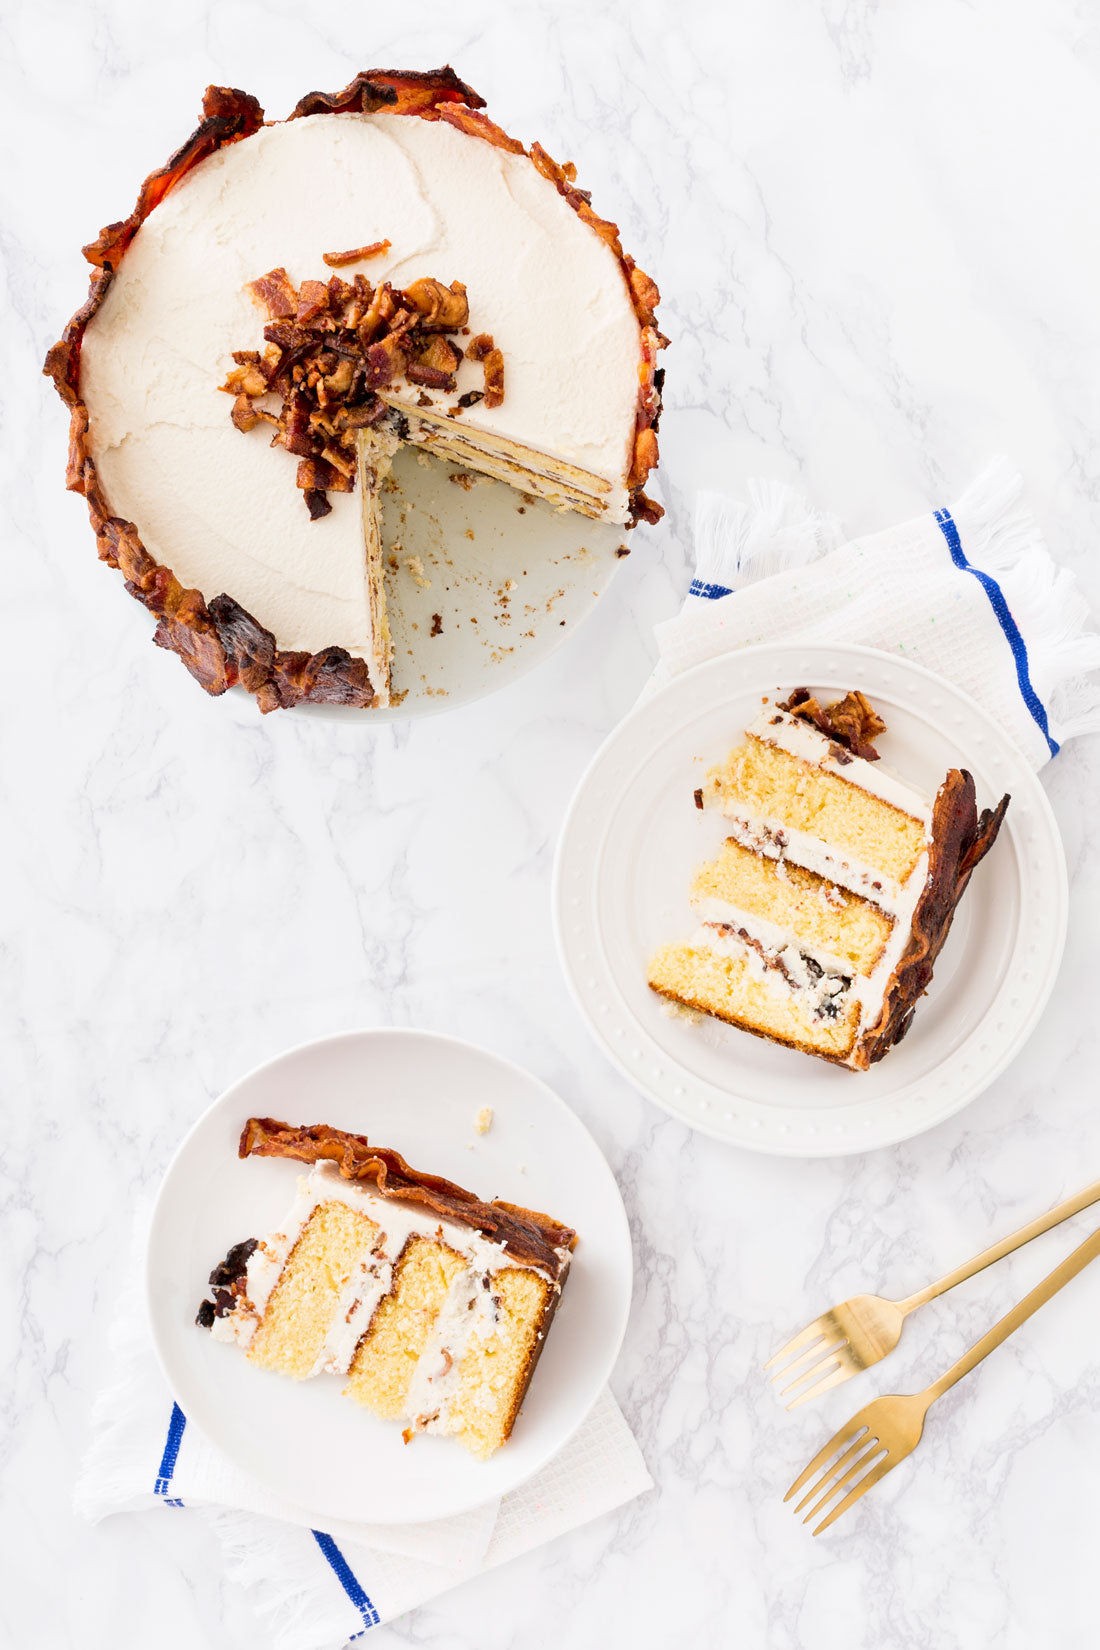 Image of the top of Miss Jones Baking Co Epic Father's Day 3-Layer Bacon and Beer Cake with two slices removed and on plates next to the cake